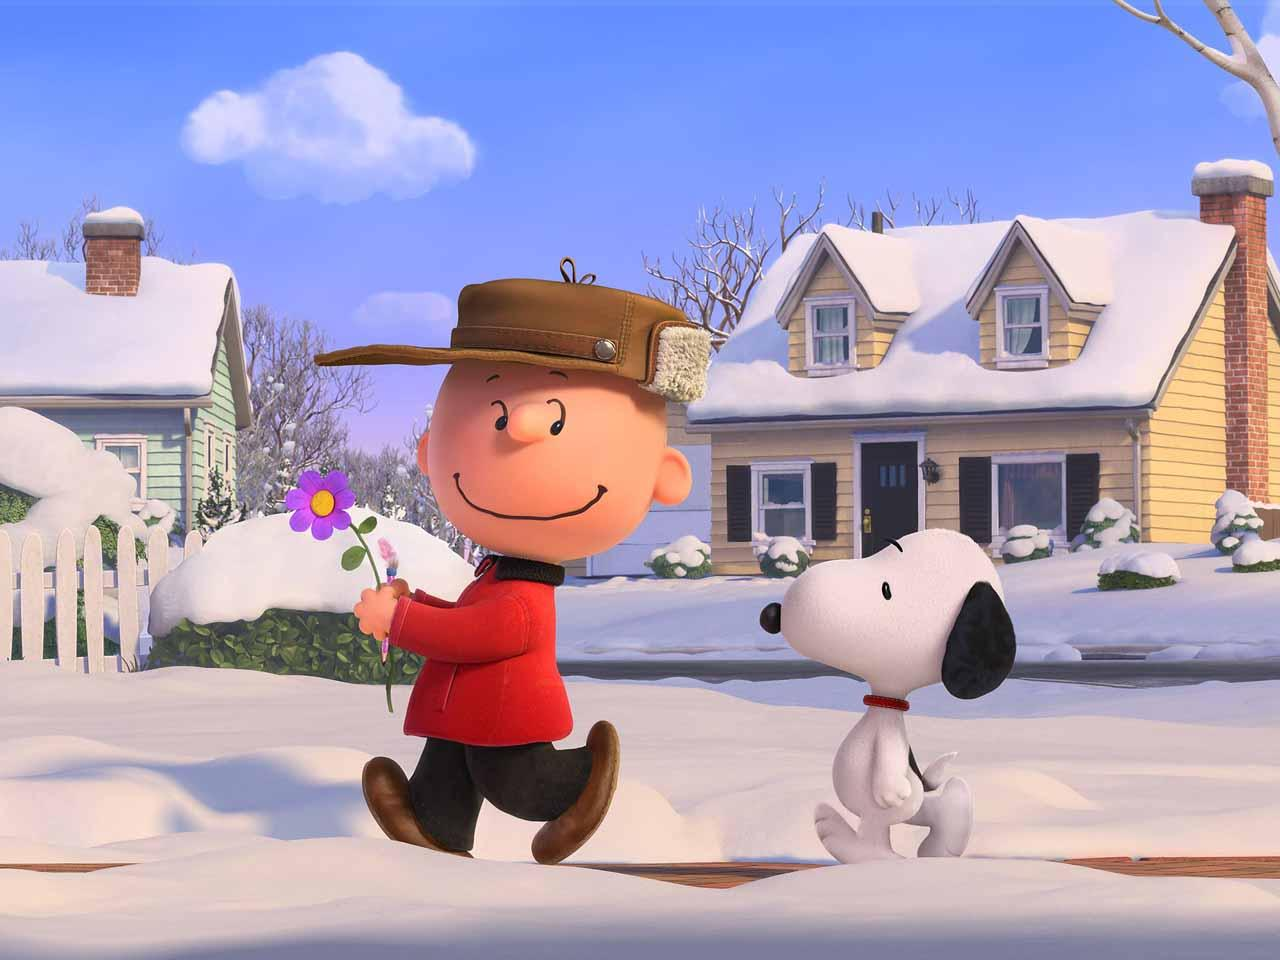 5-new-images-from-the-animated-peanuts-film2